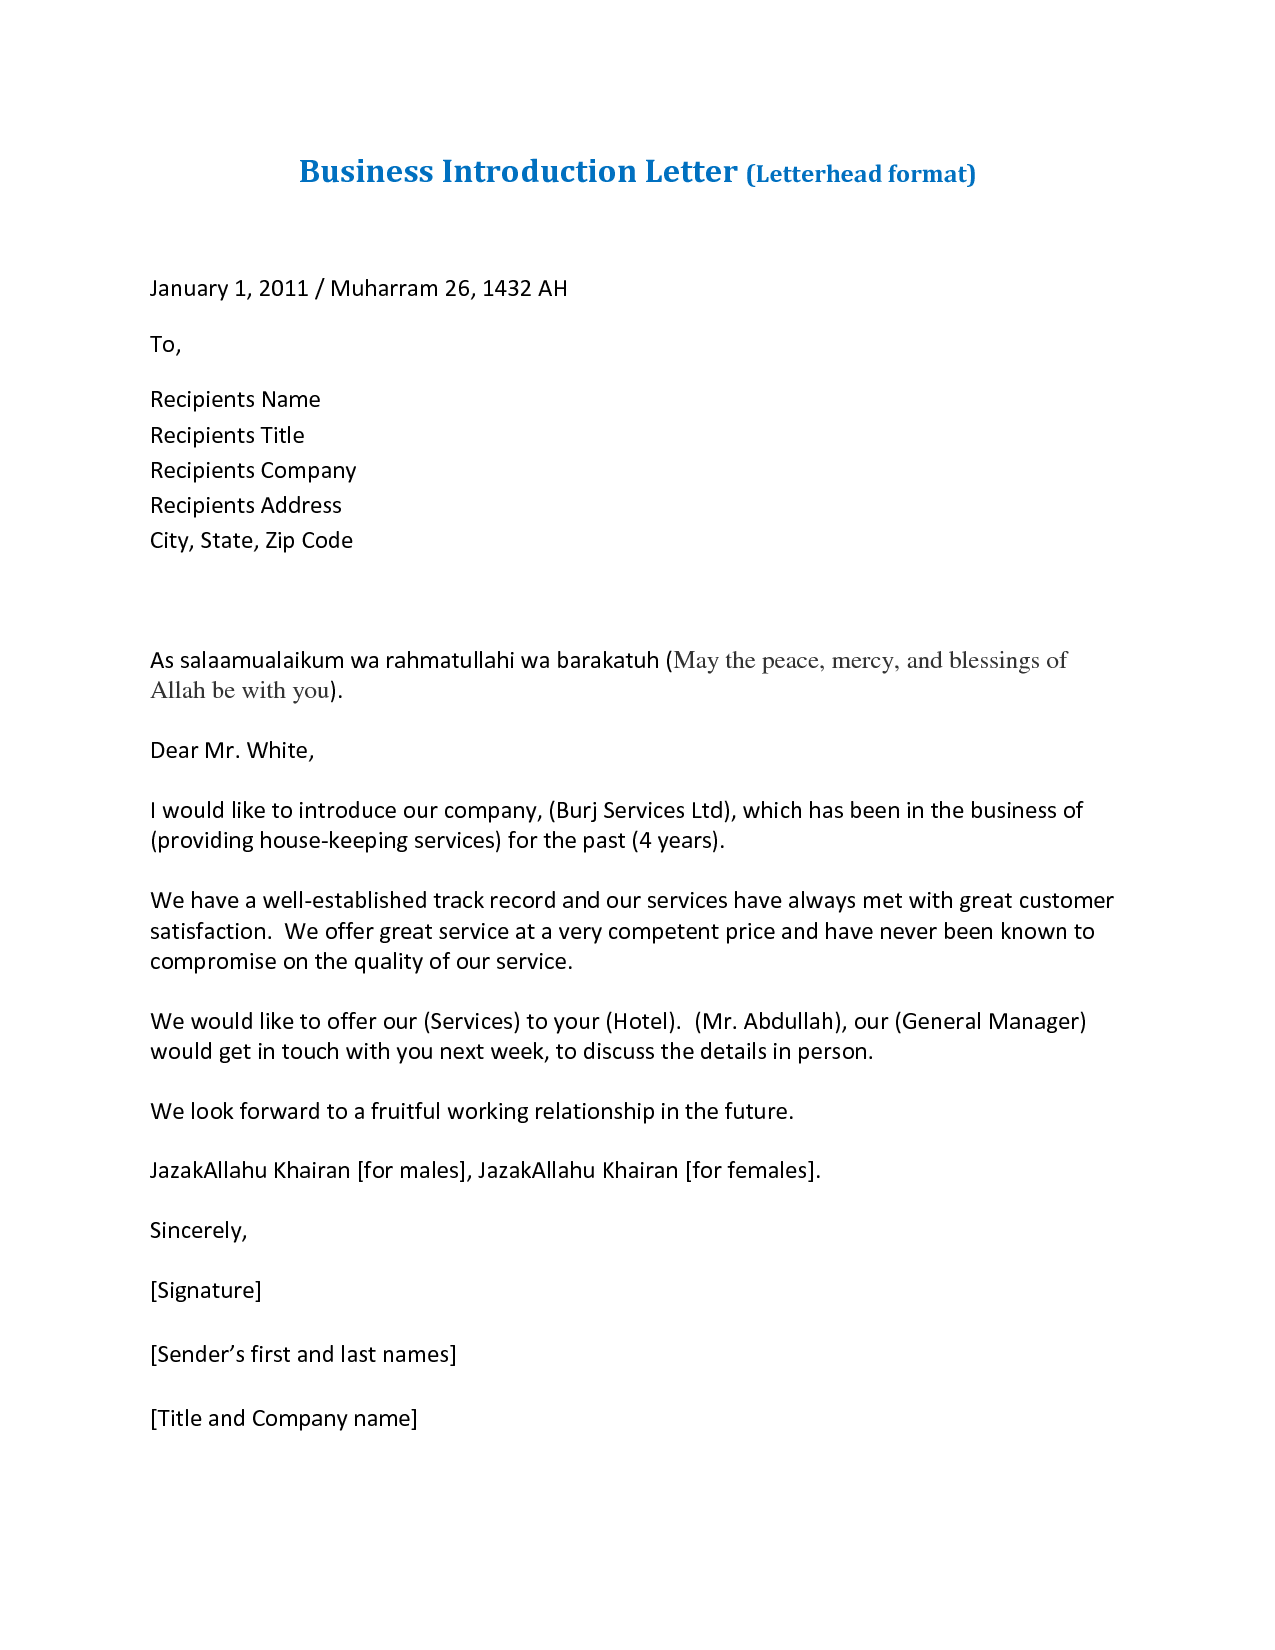 business introductory letter template elrey de bodas